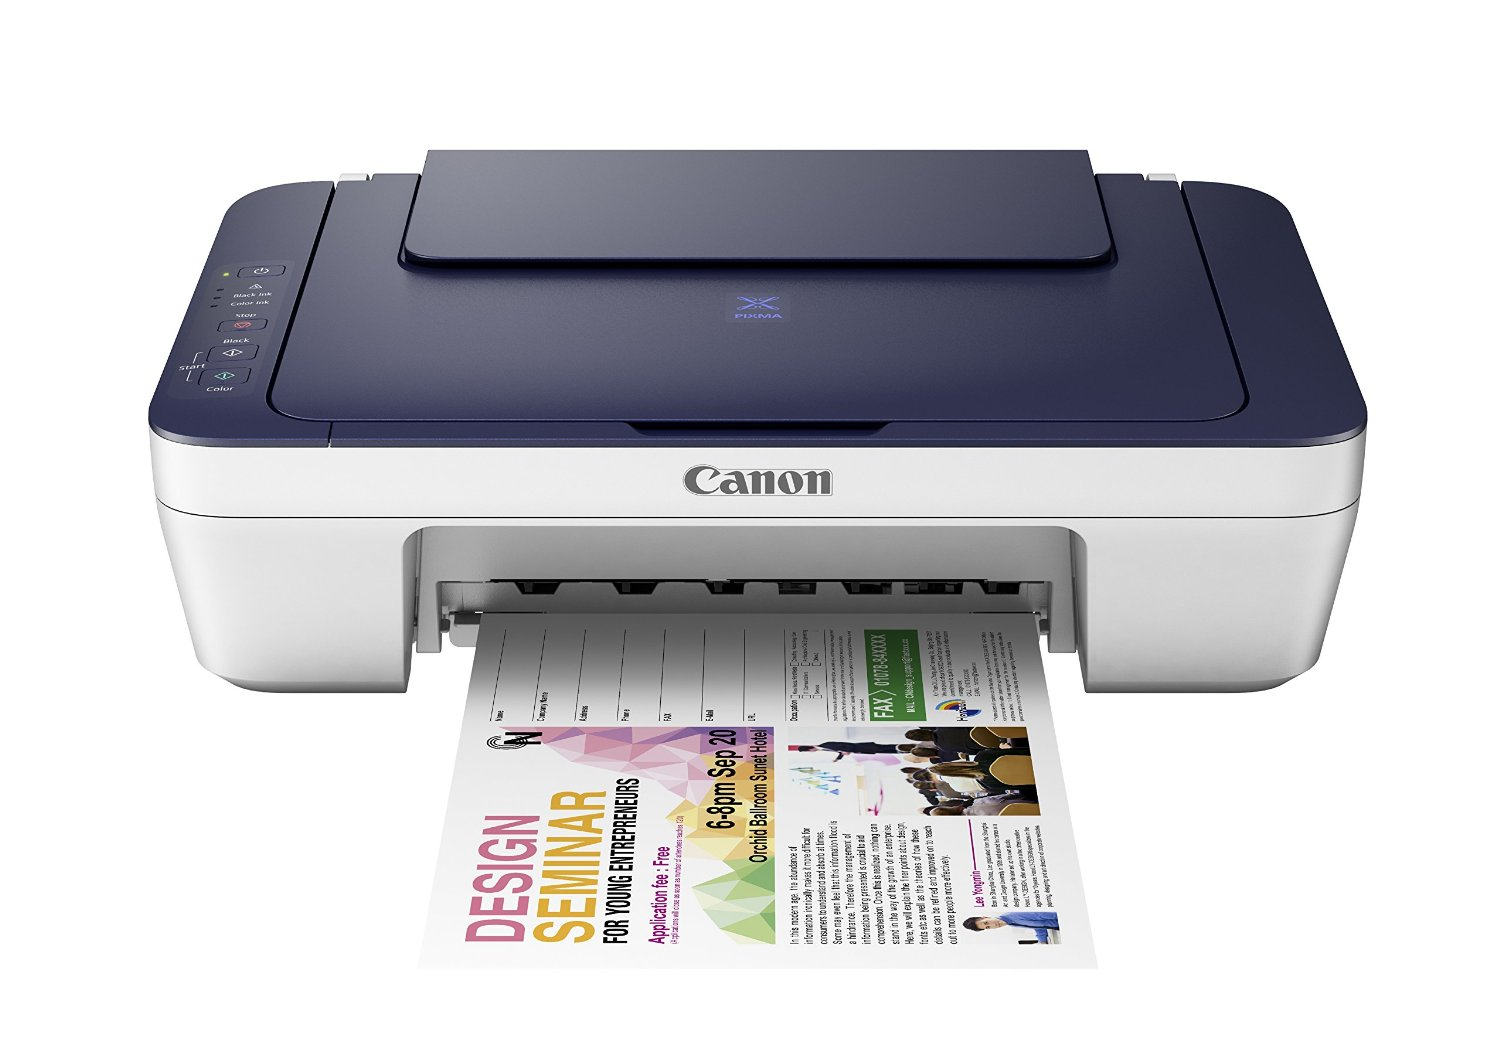 Canon Pixma MG2577s All-In-One InkJet Printer Image